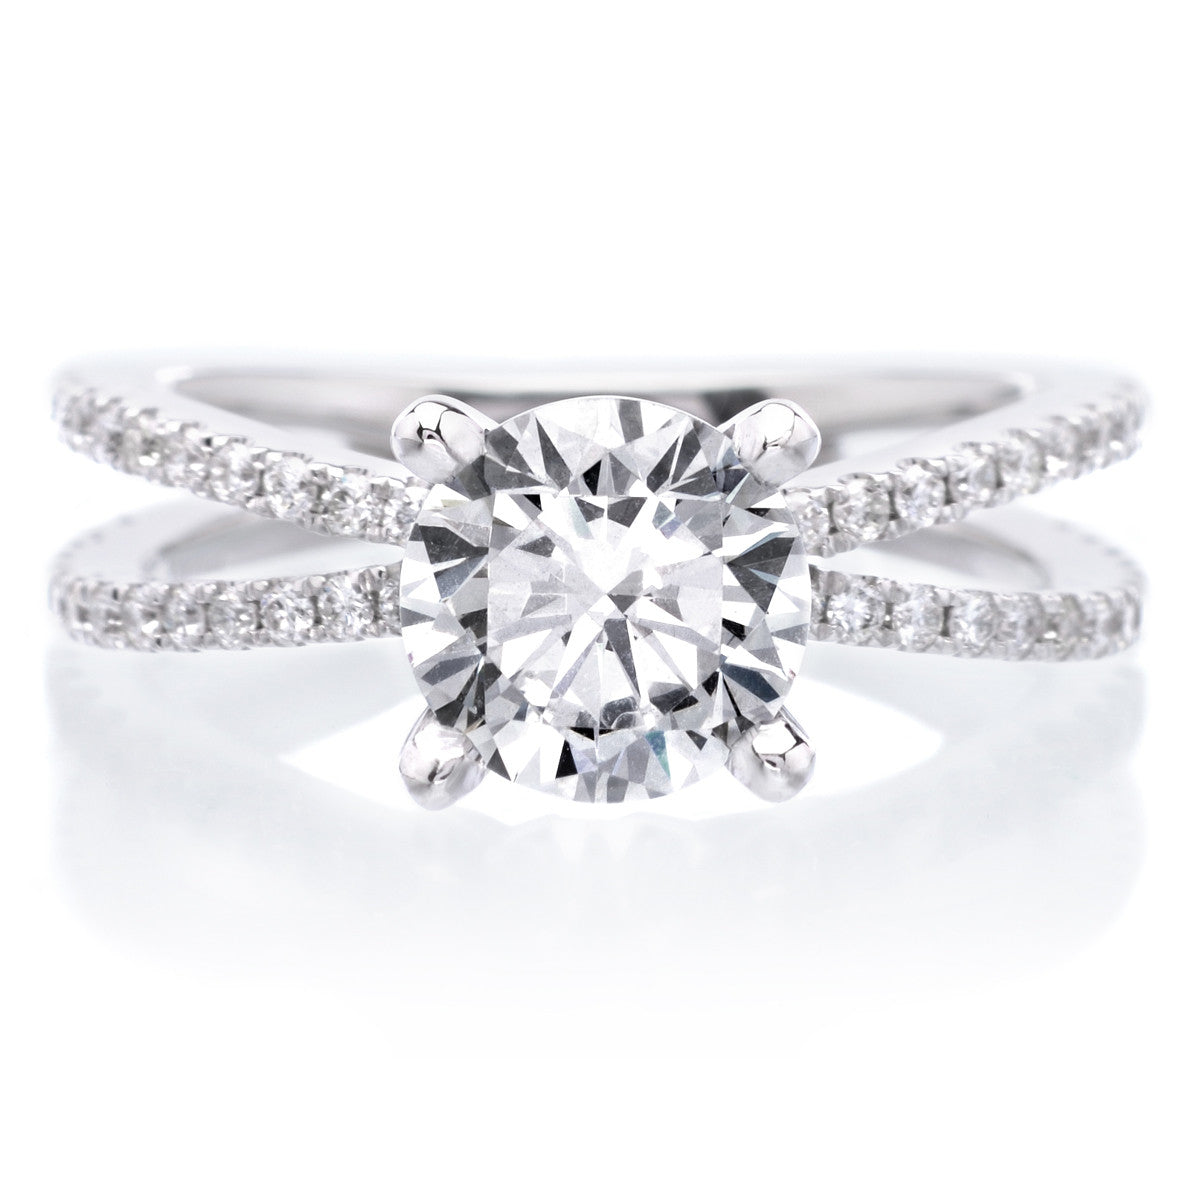 Stunning Split Shank Round Brilliant Diamond Engagement Ring